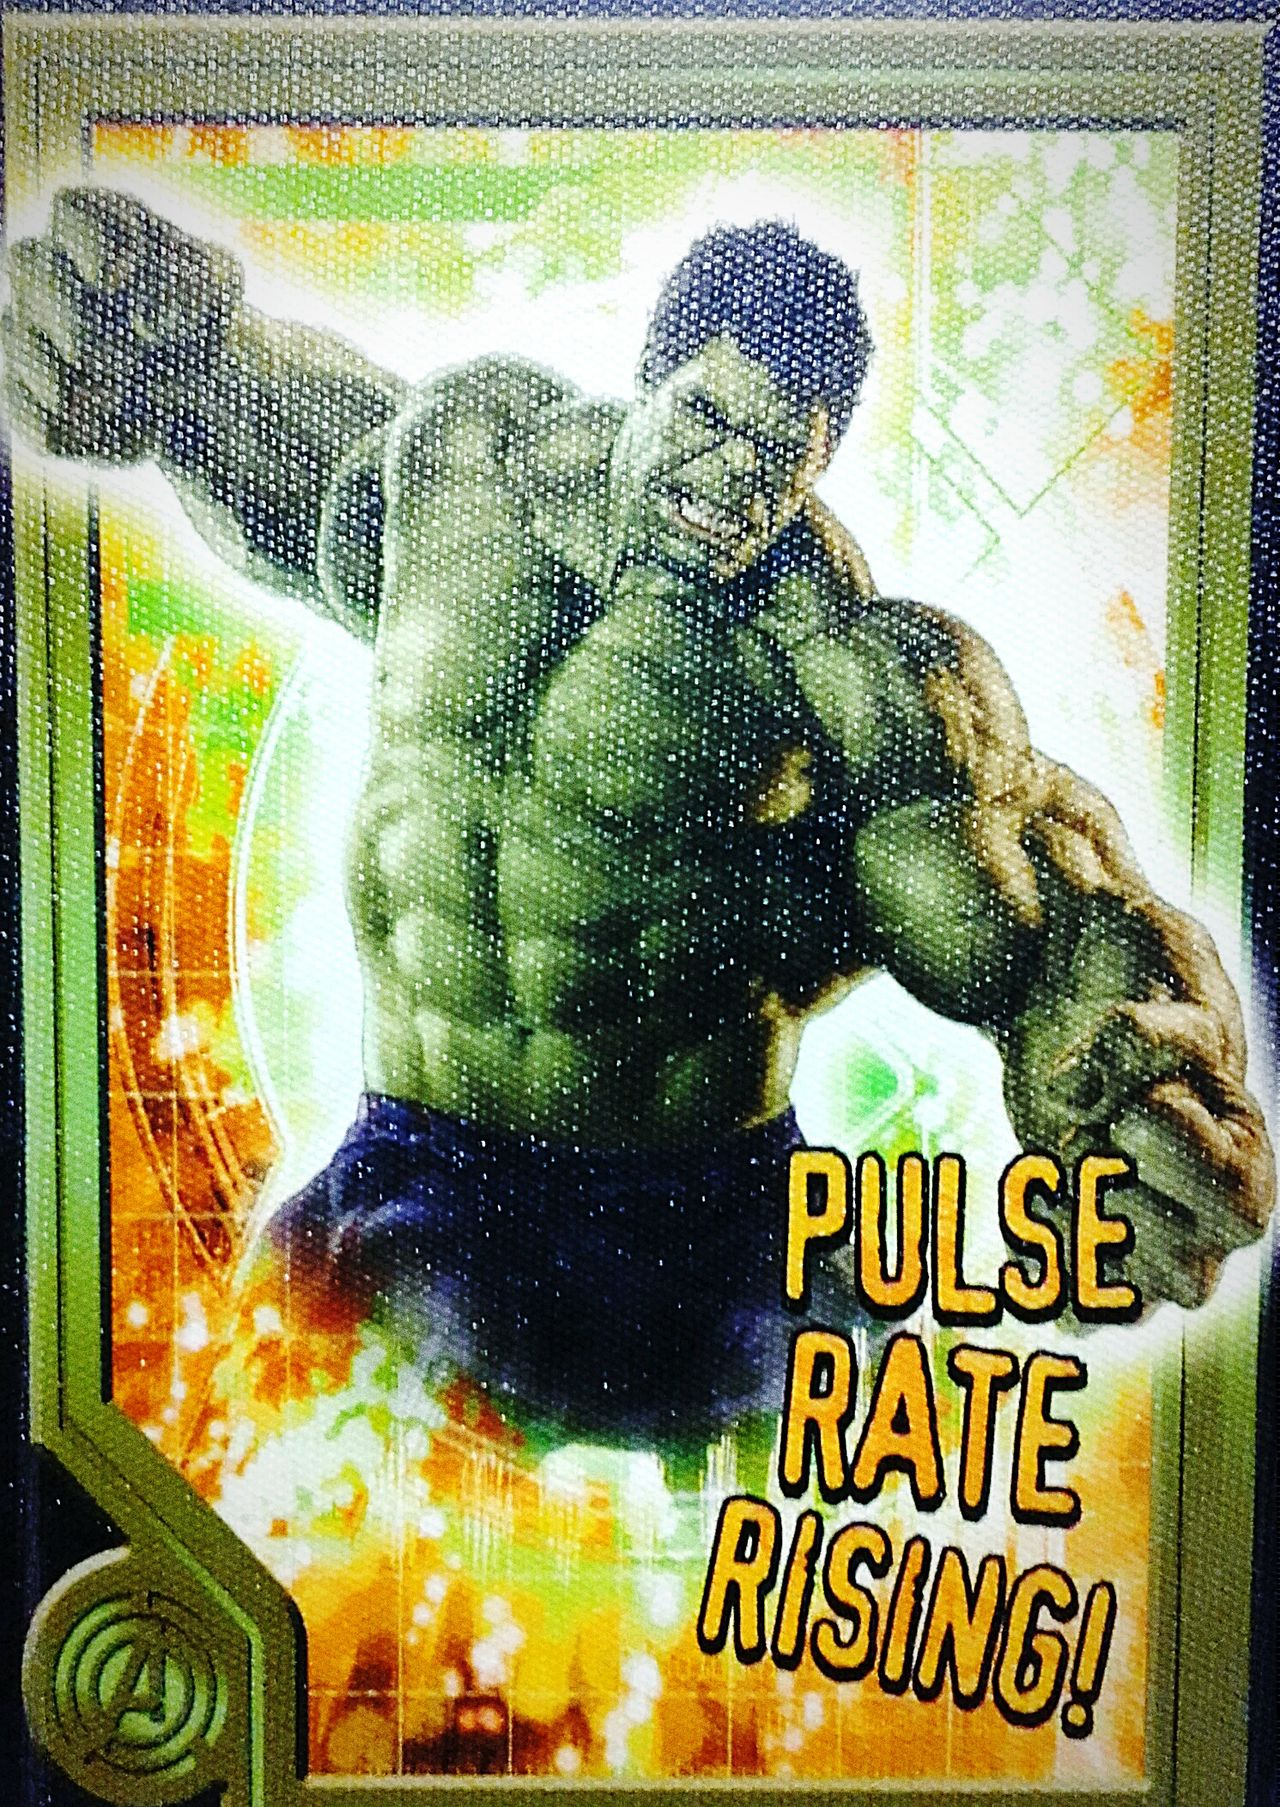 Pulse Rate Rising The Incredible Hulk The Hulk Posters Marvellengends Marvel The Green Man Thehulk Theincrediblehulk Aarrrgghhh Six Pack ABS Hulk :) The Hulk ! Avengers MarvelHeroes Marvelcomics Posterporn Poster BIG Green Hulk